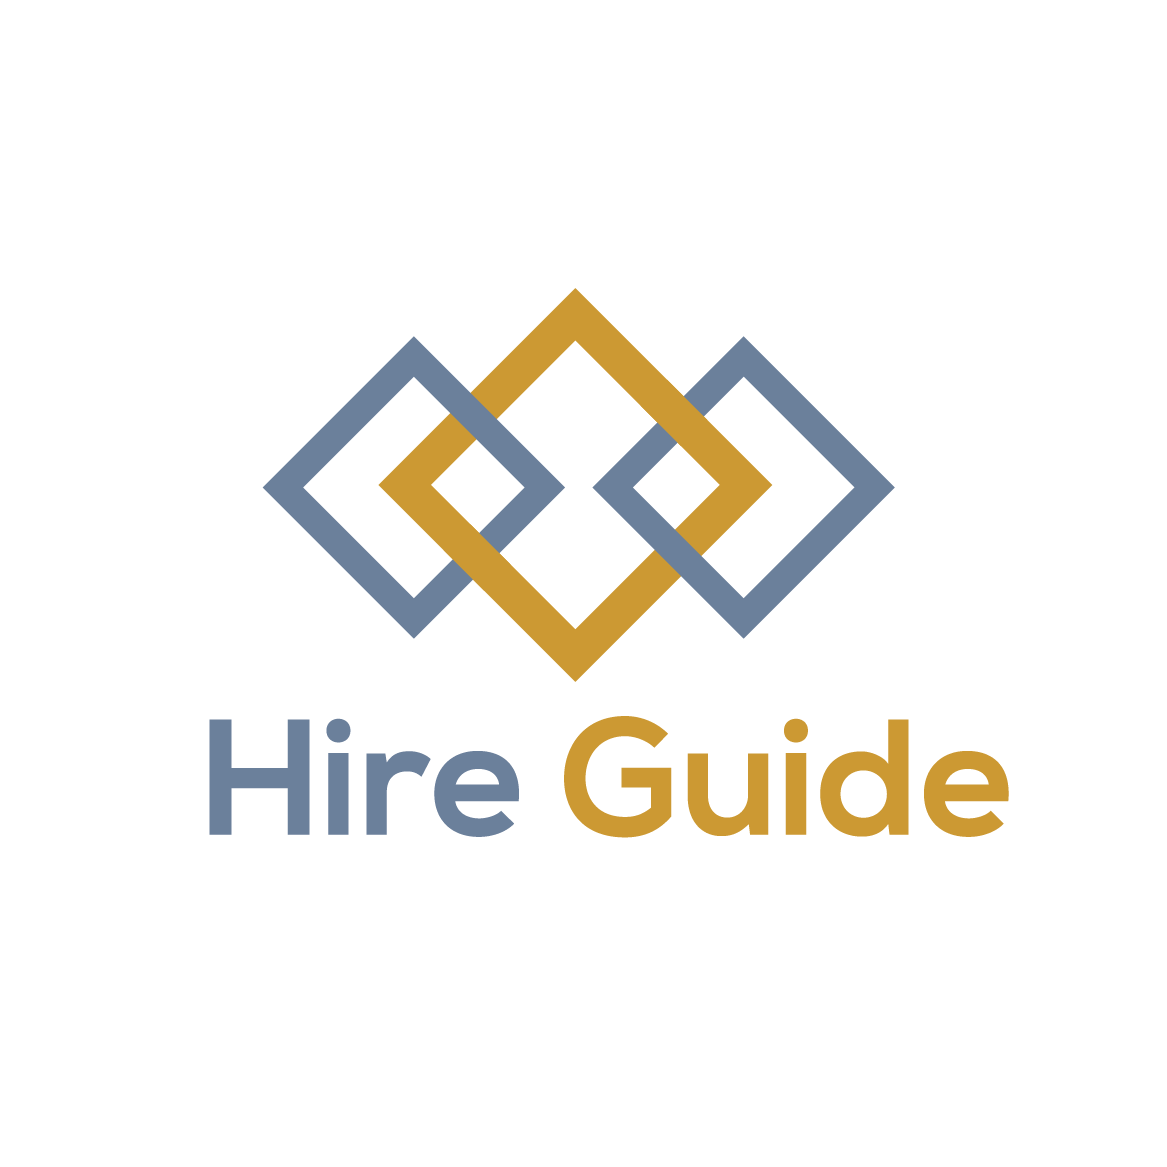 Hire Guide